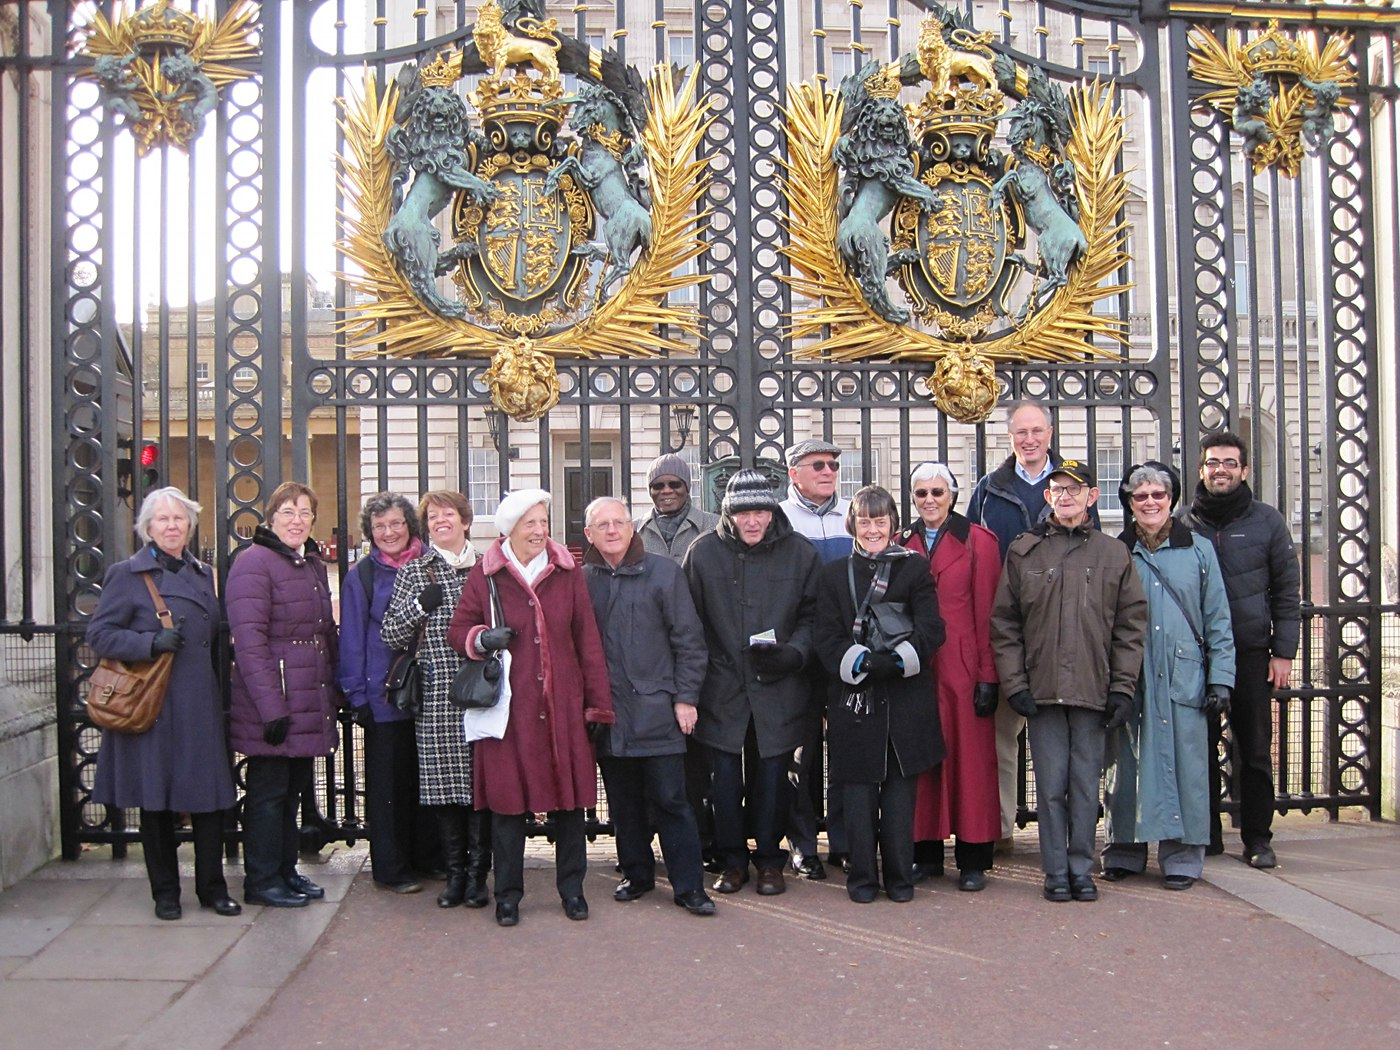 Group outside Buckingham Palace